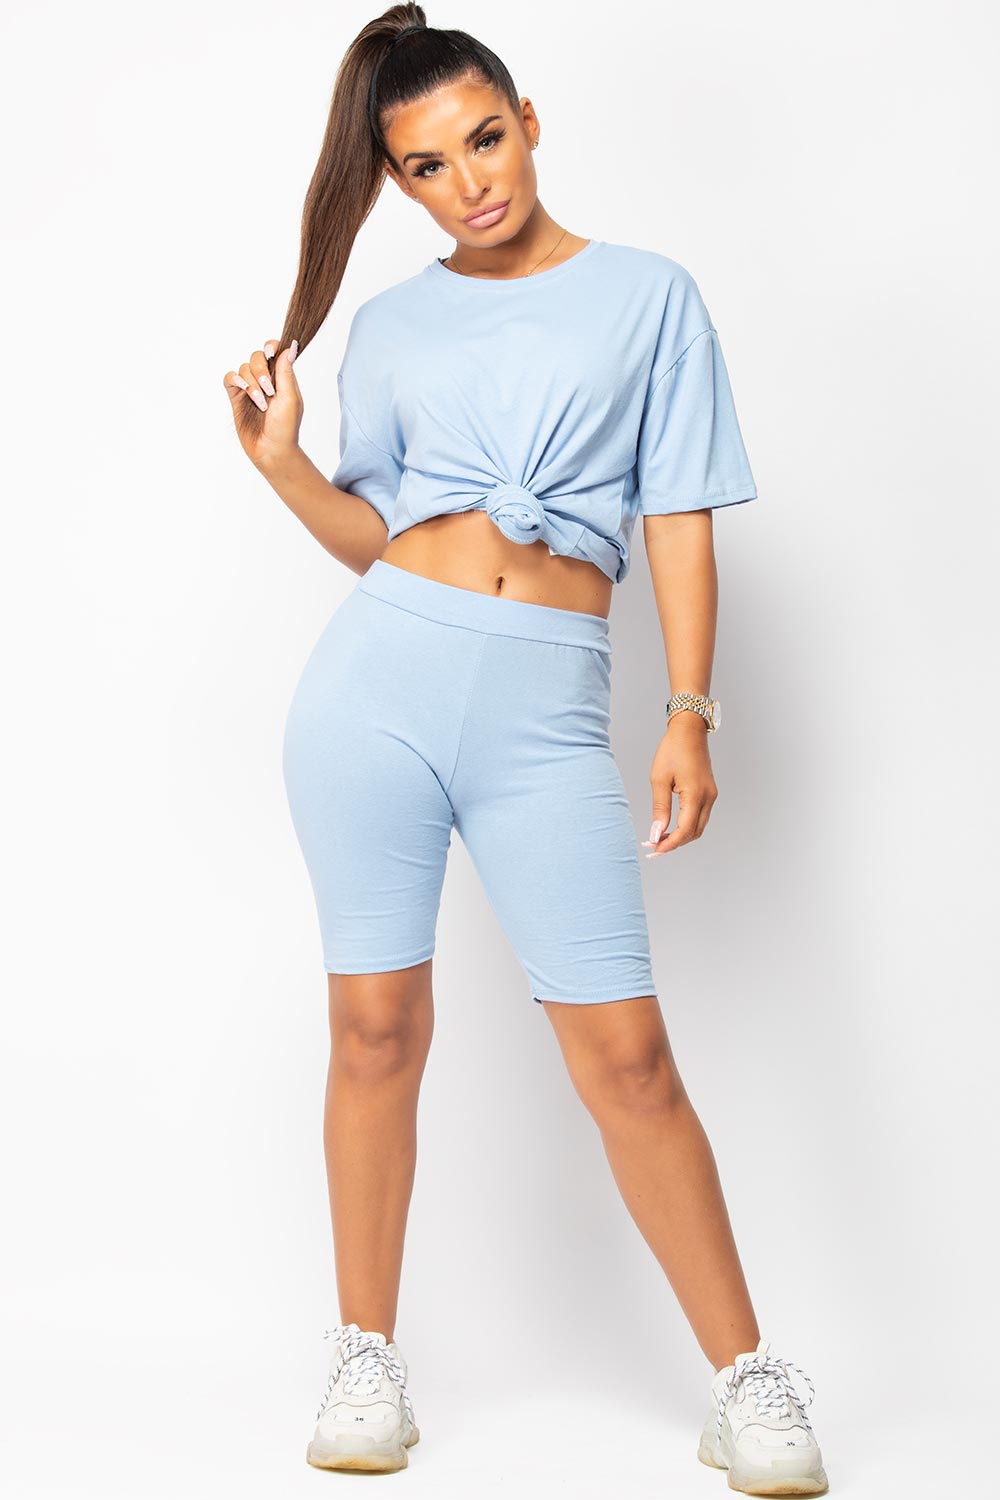 sky blue oversized tee shirt and shorts set